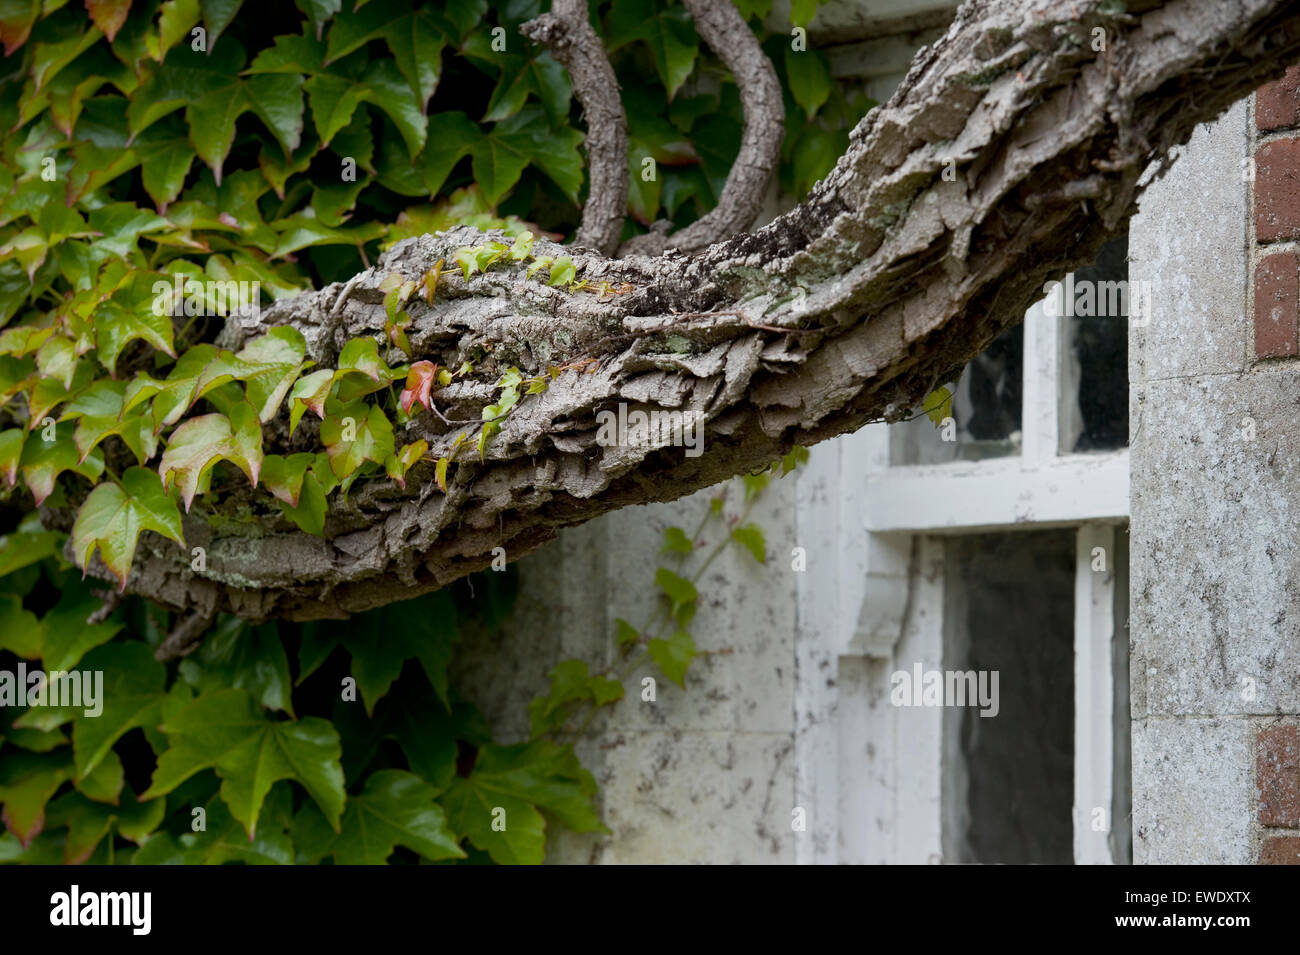 virginia creeper on an old house - Stock Image